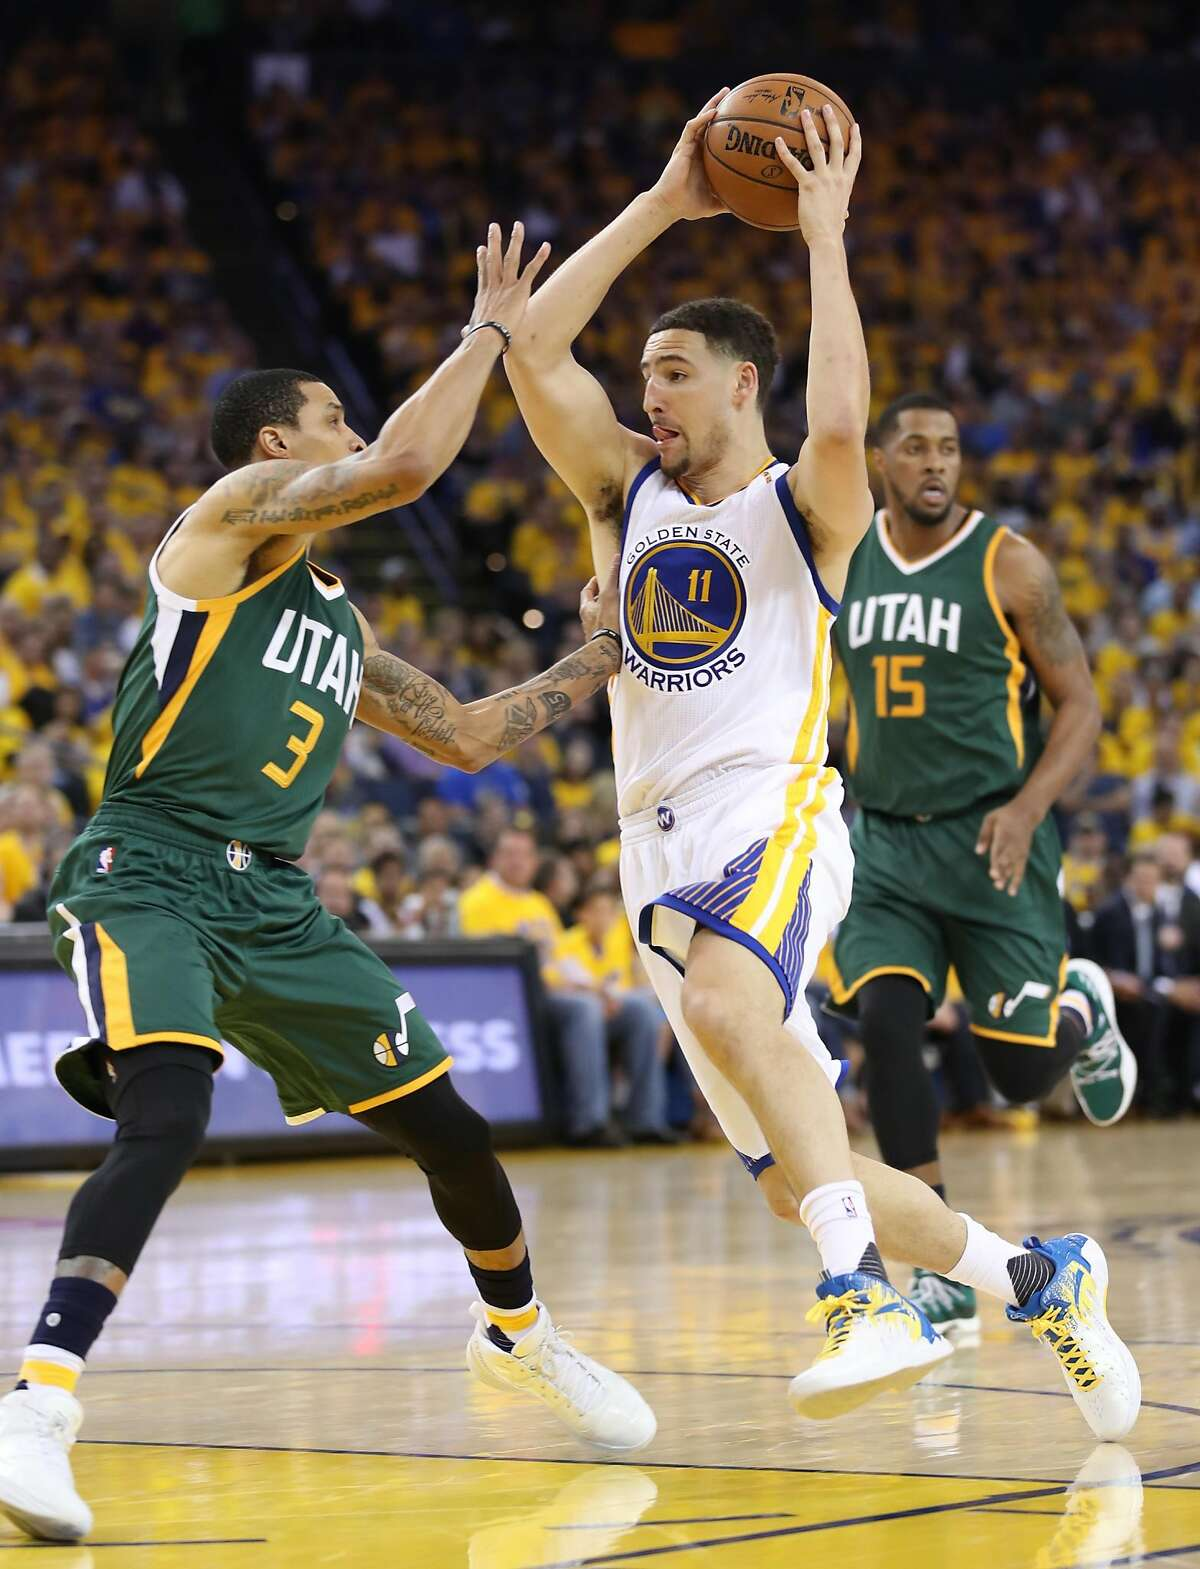 Golden State Warriors' Klay Thompson drives against Utah Jazz' George Hill in 4th quarter of Warriors' 106-94 win in Game 1 of NBA Western Conference Semifinals at Oracle Arena in Oakland, Calif., on Tuesday, May 2, 2017.